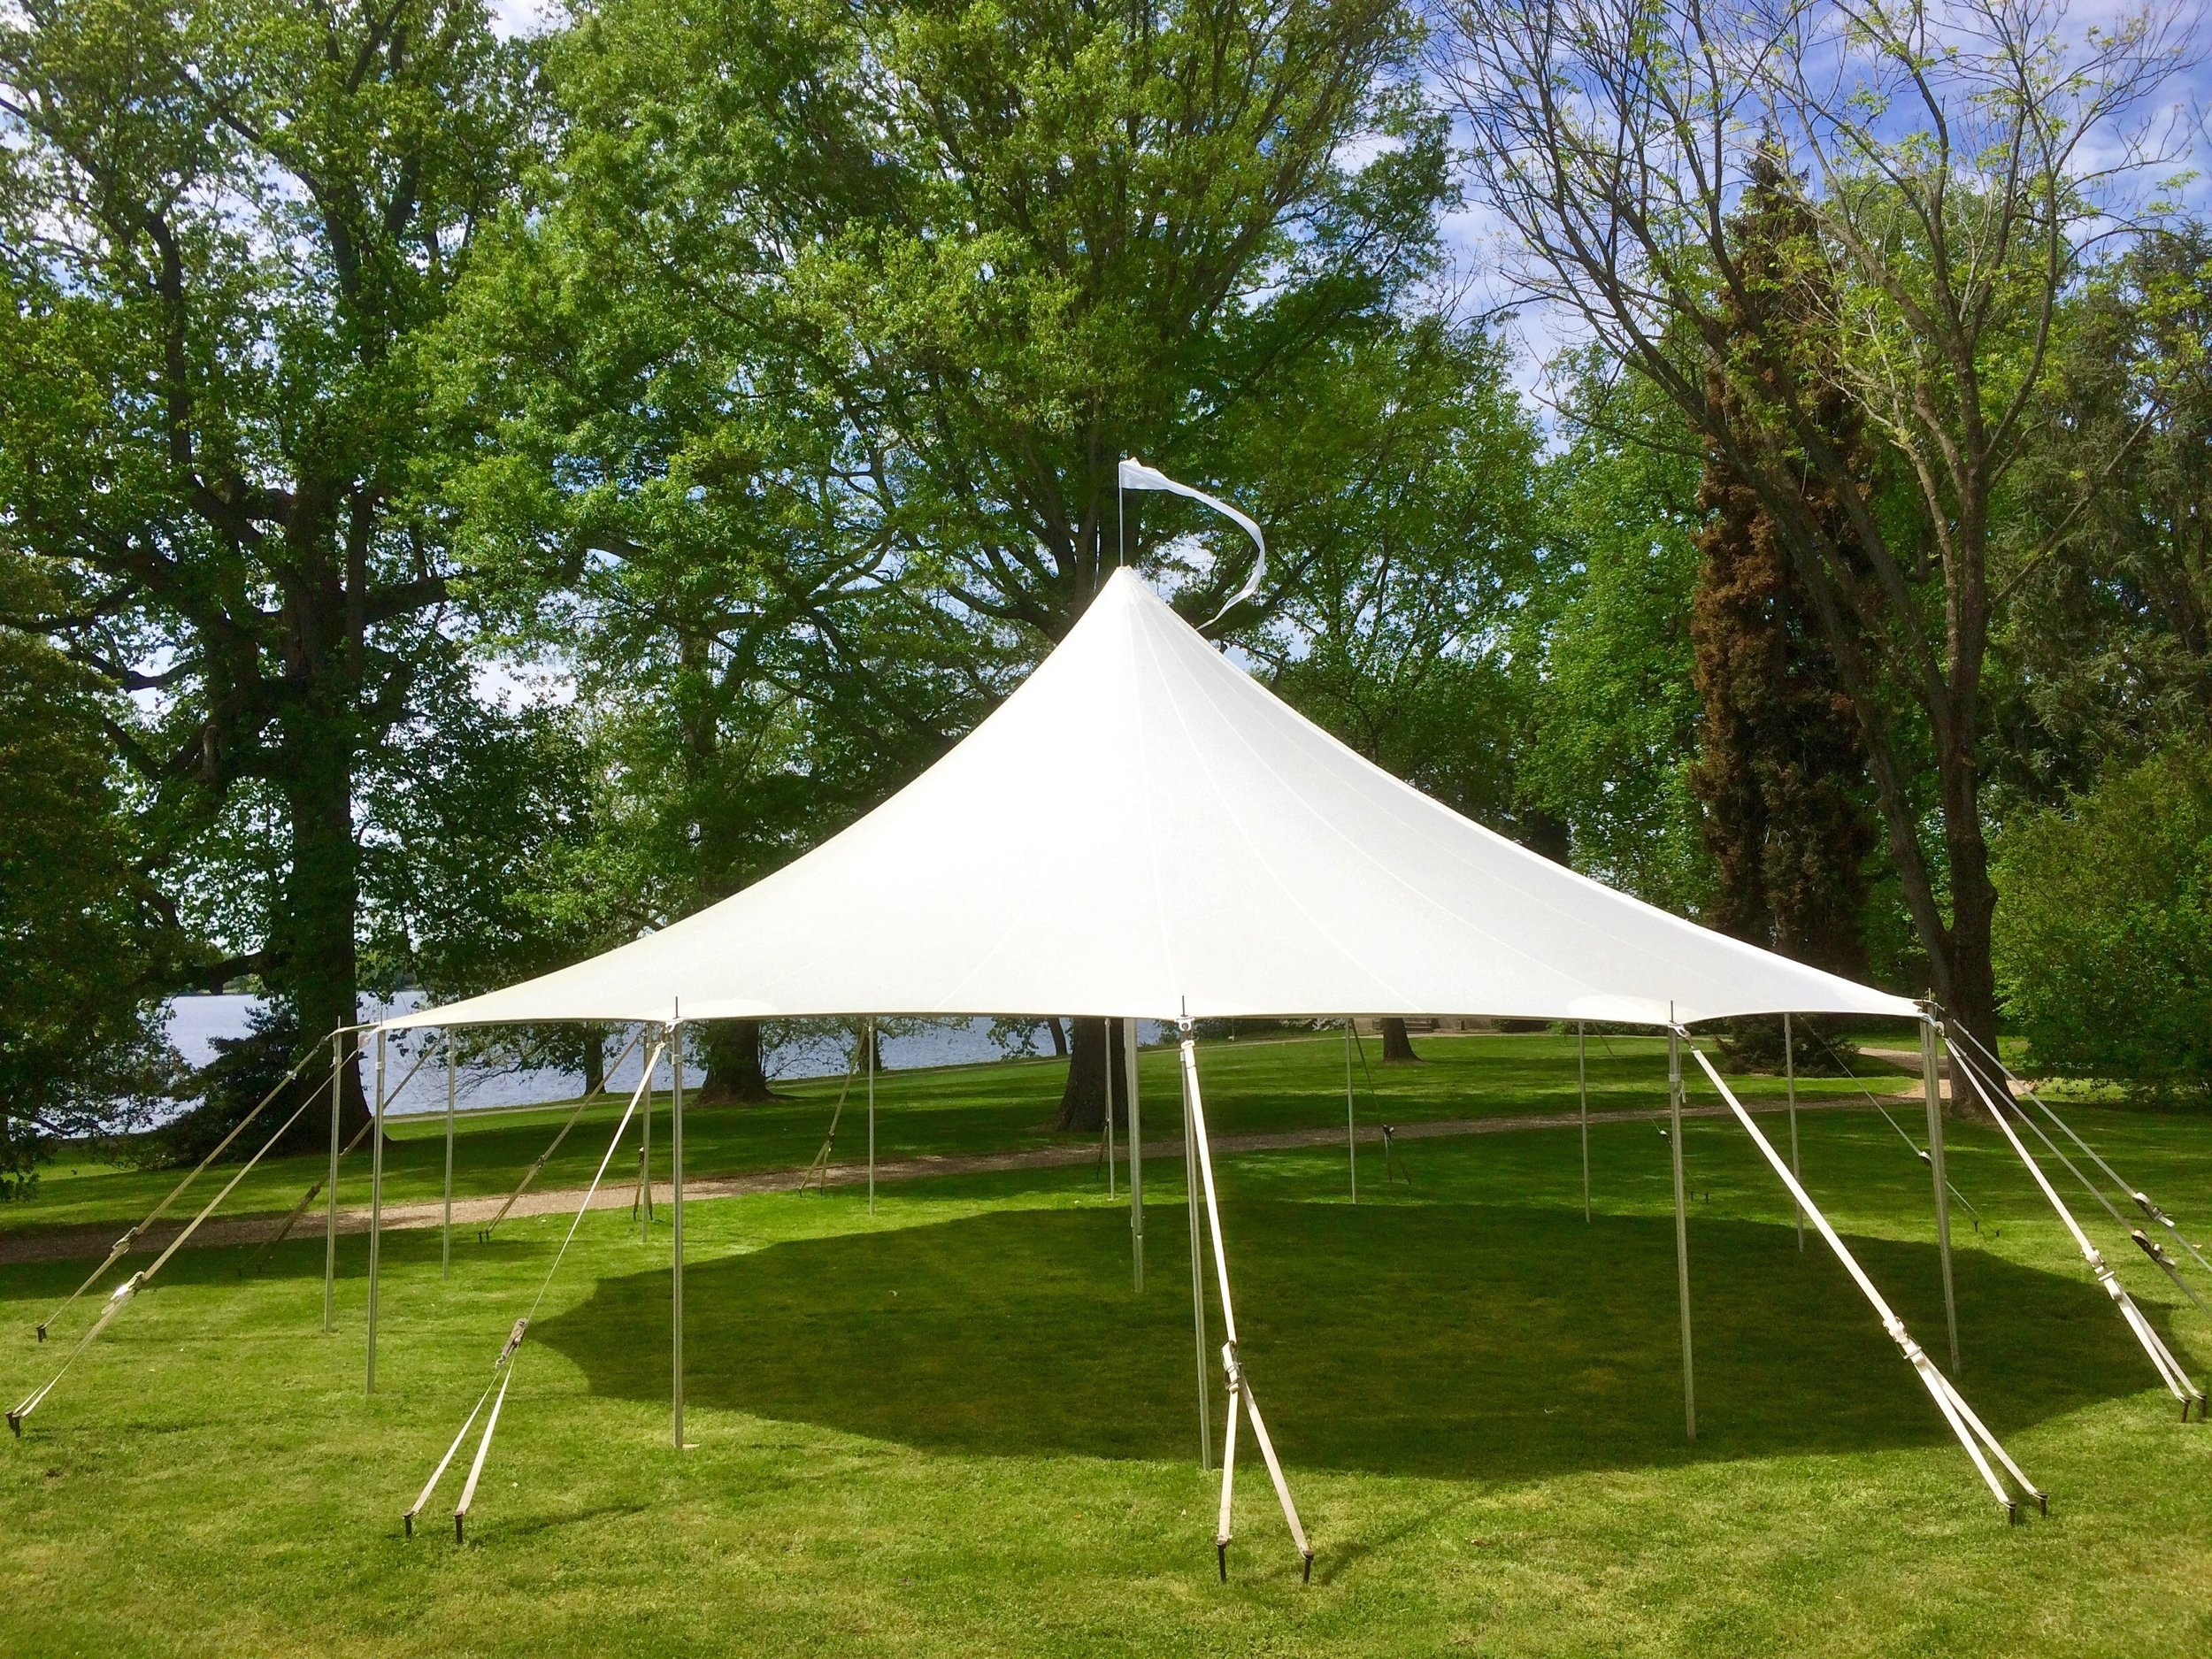 Sailcloth tents for rent in Jersey City, NJ